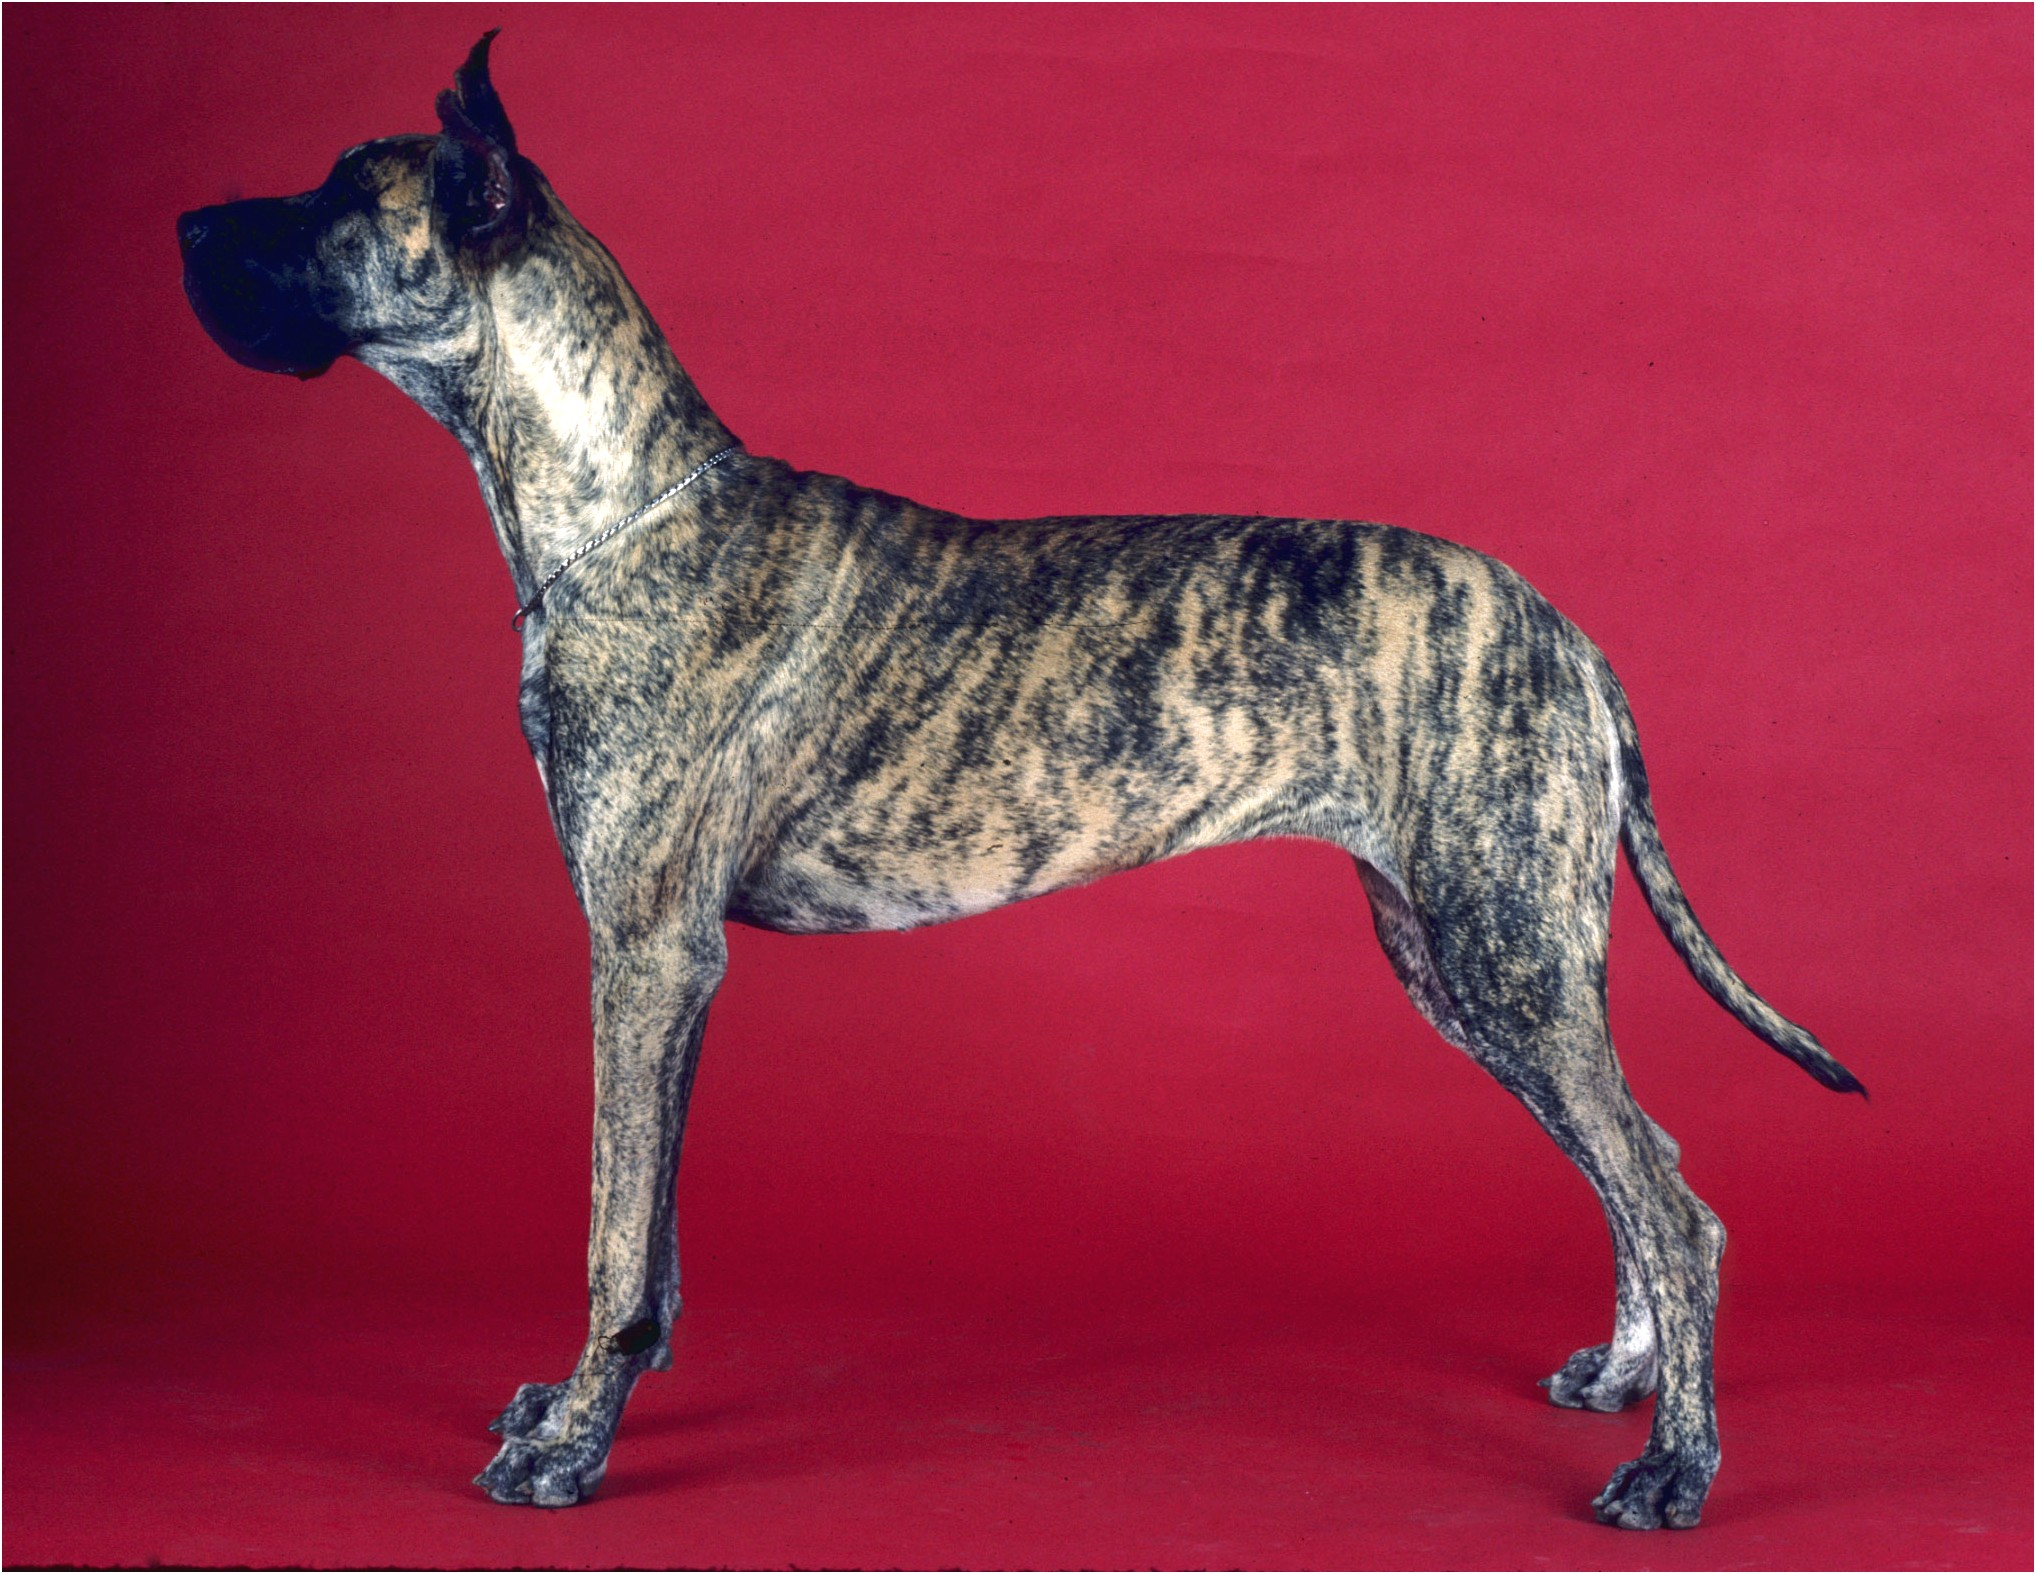 fawn great dane puppies for sale in california